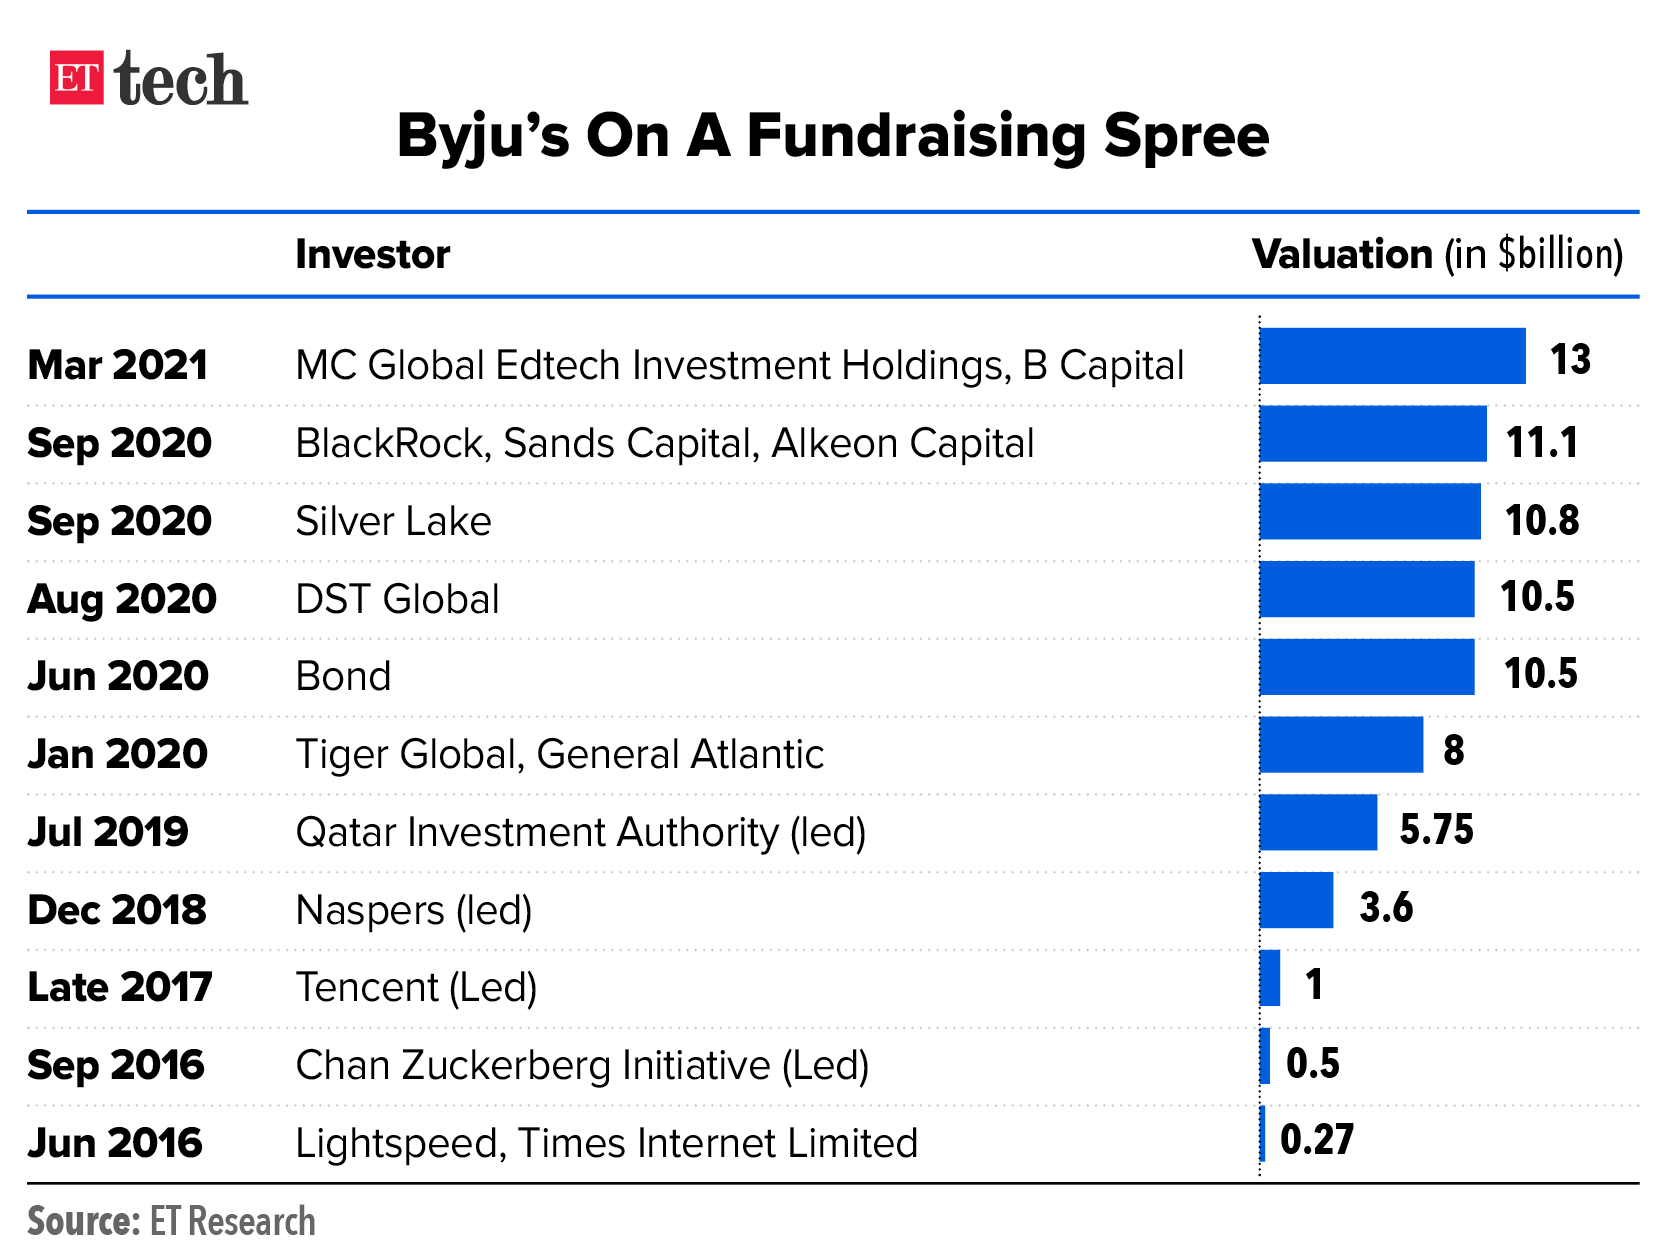 Byjus On A Fundraising Spree